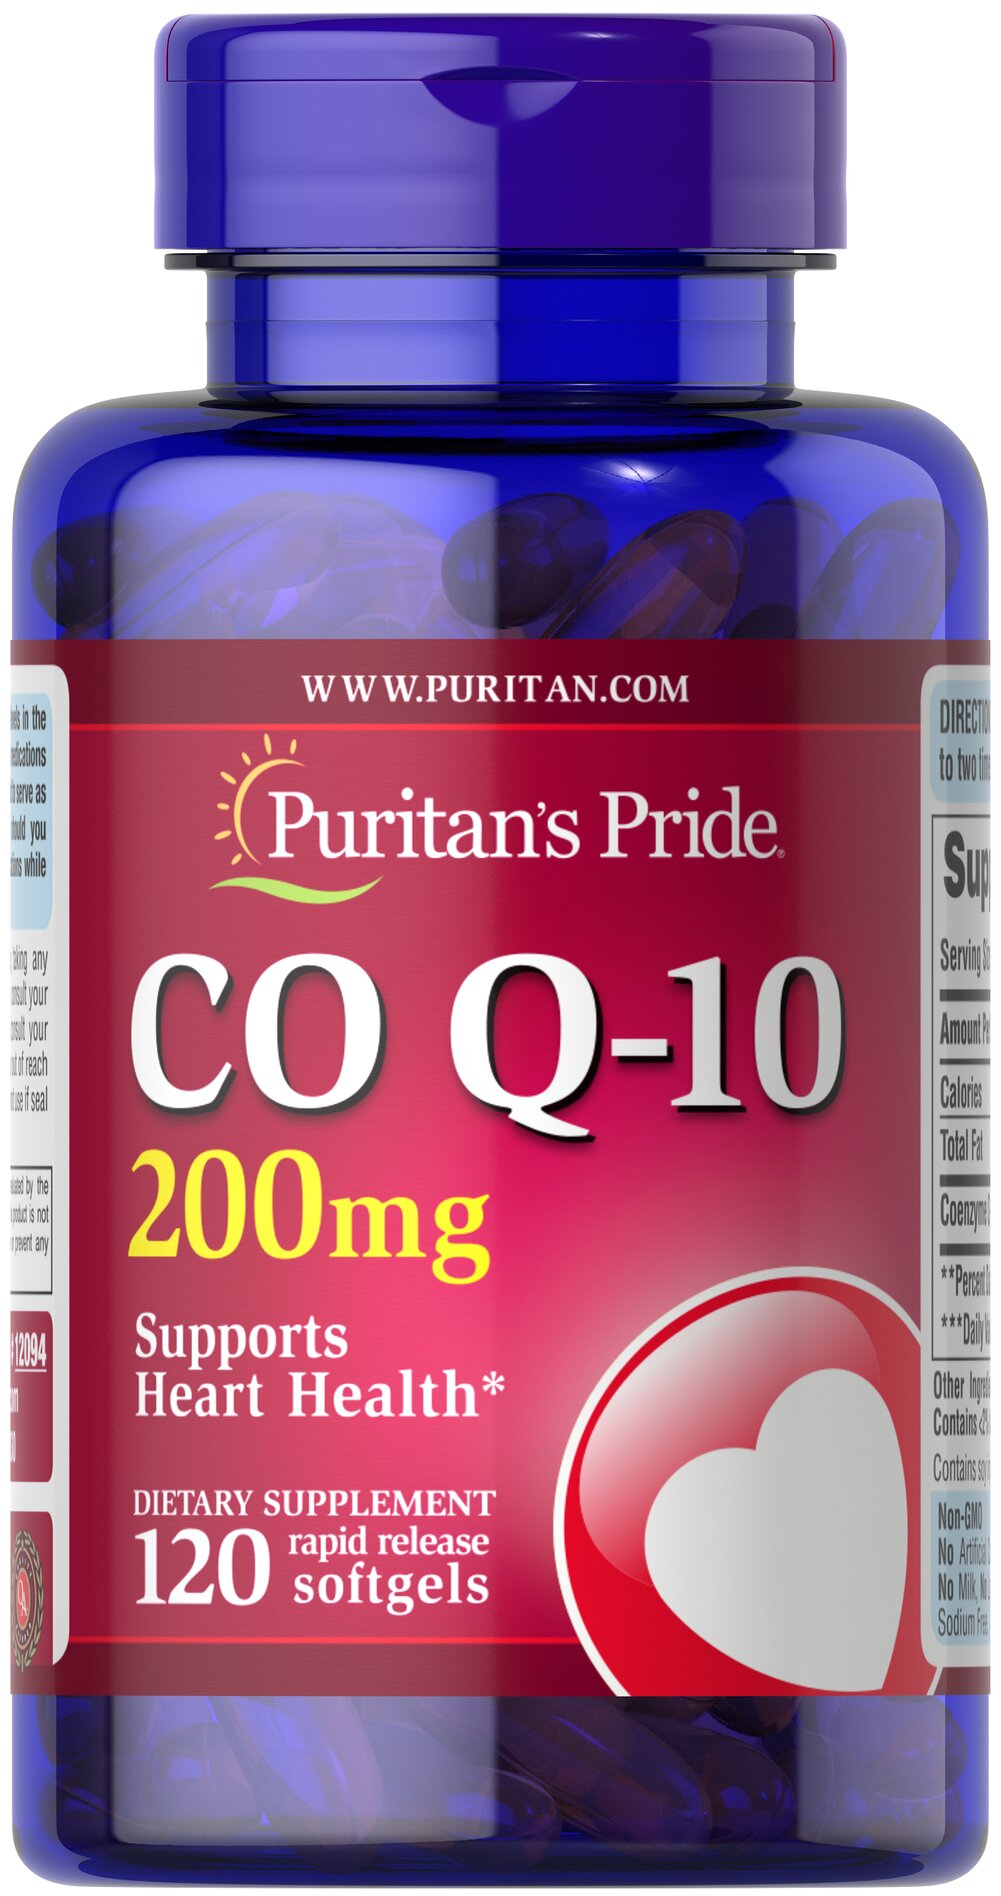 Q-SORB™ Co Q-10 200 mg <p></p>•    Contributes to your heart and cardiovascular wellness**<br />•    Helps support healthy blood pressure levels already within a normal range**<br />•    Promotes energy production within your heart and muscles**<br /><br /><br />Made with a natural, highly bioavailable form of Co Q 10 — Q-Sorb.™ Important for Statin medication users++ — taki